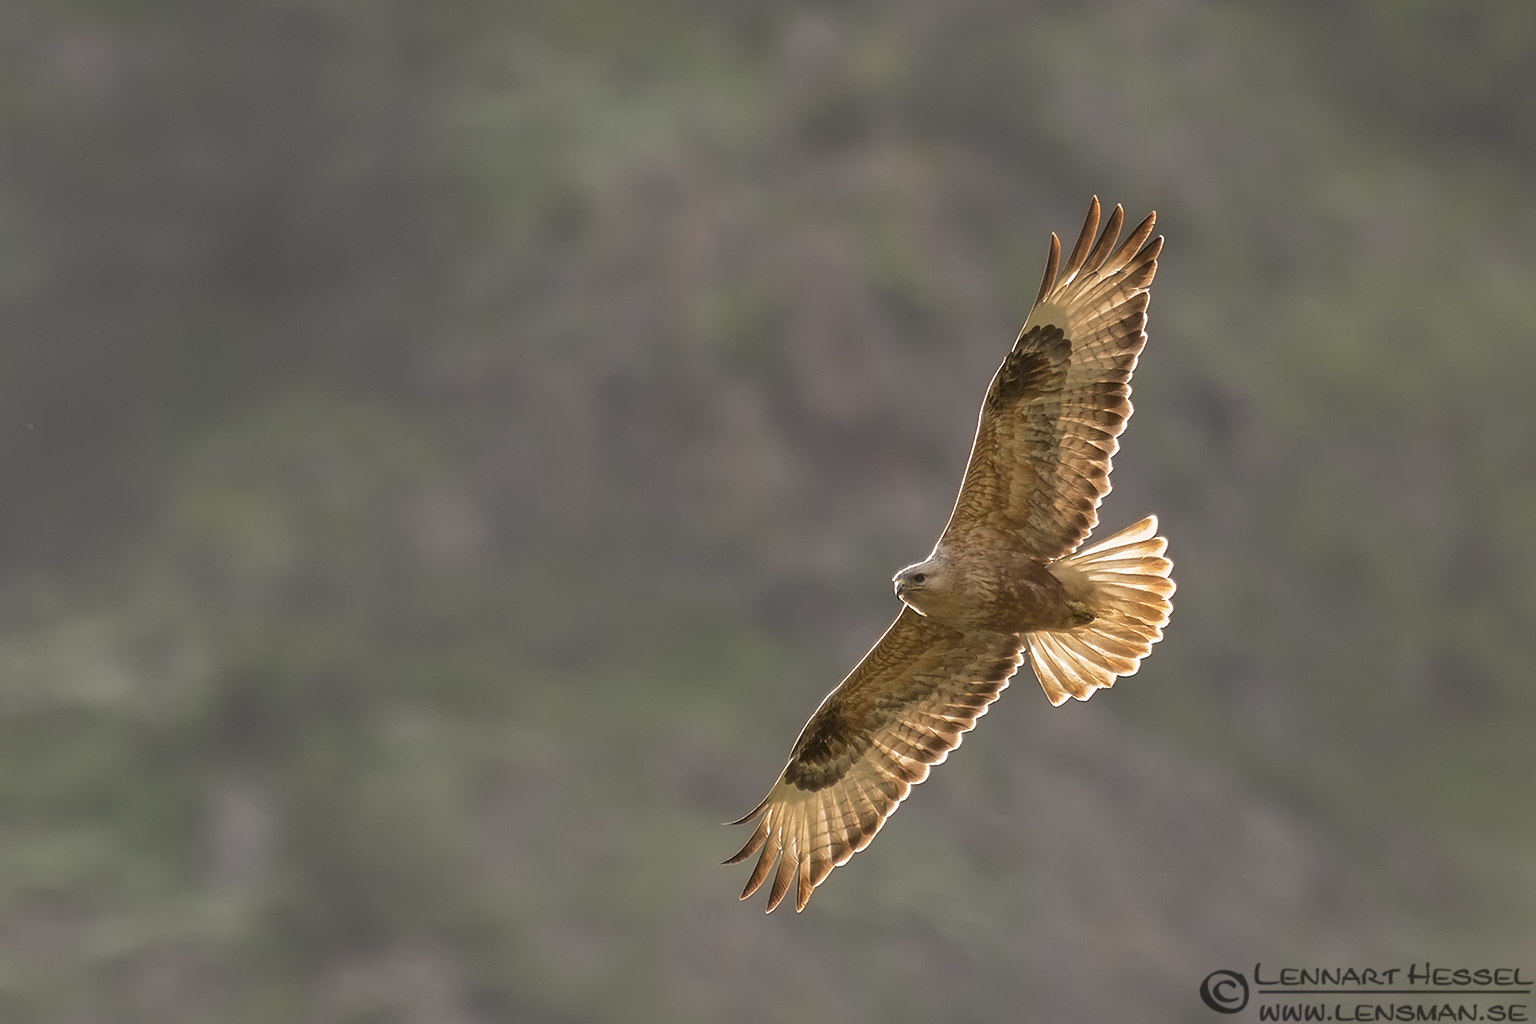 Long-legged Buzzard from Bulgaria Vulture workshop